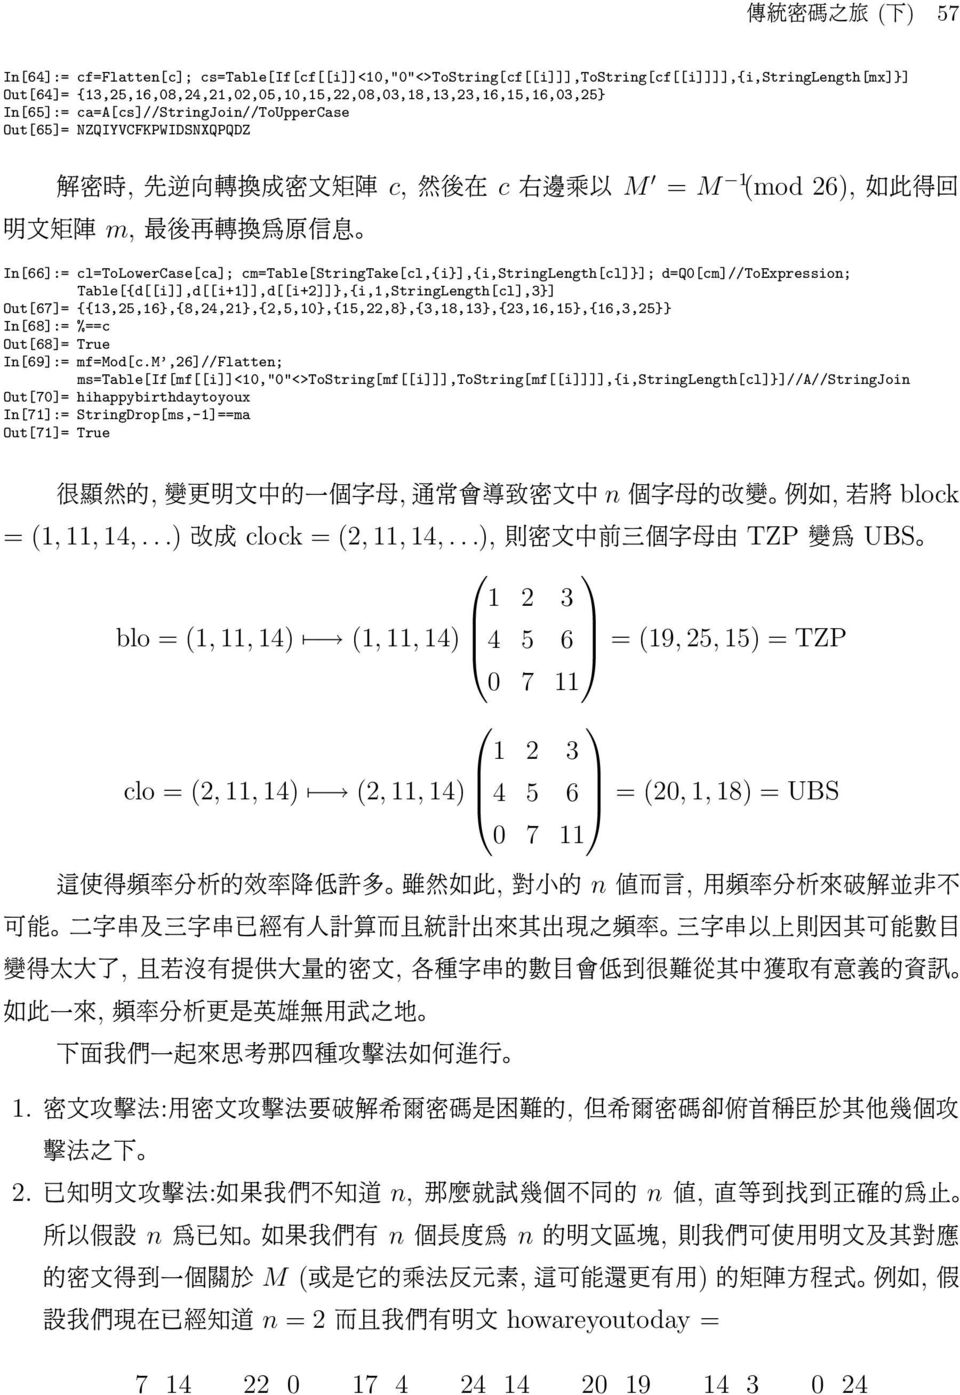 26), 如 此 得 回 明 文 矩 陣 m, 最 後 再 轉 換 為 原 信 息 In[66]:= cl=tolowercase[ca]; cm=table[stringtake[cl,{i}],{i,stringlength[cl]}]; d=q0[cm]//toexpression;